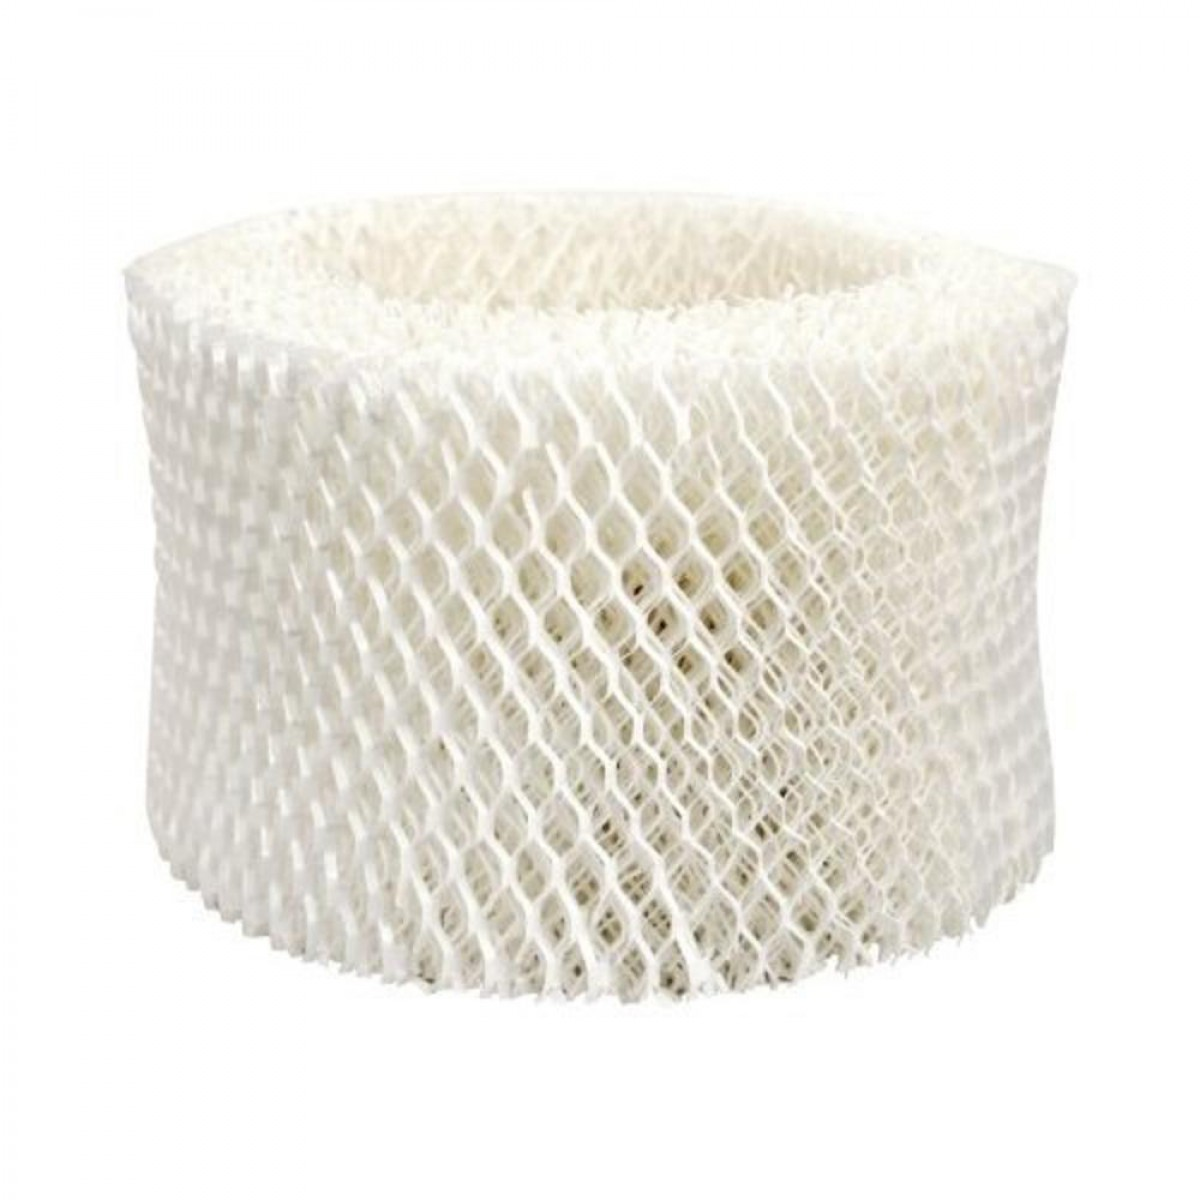 Honeywell HC 888 Humidifier Replacement Filter #43371F